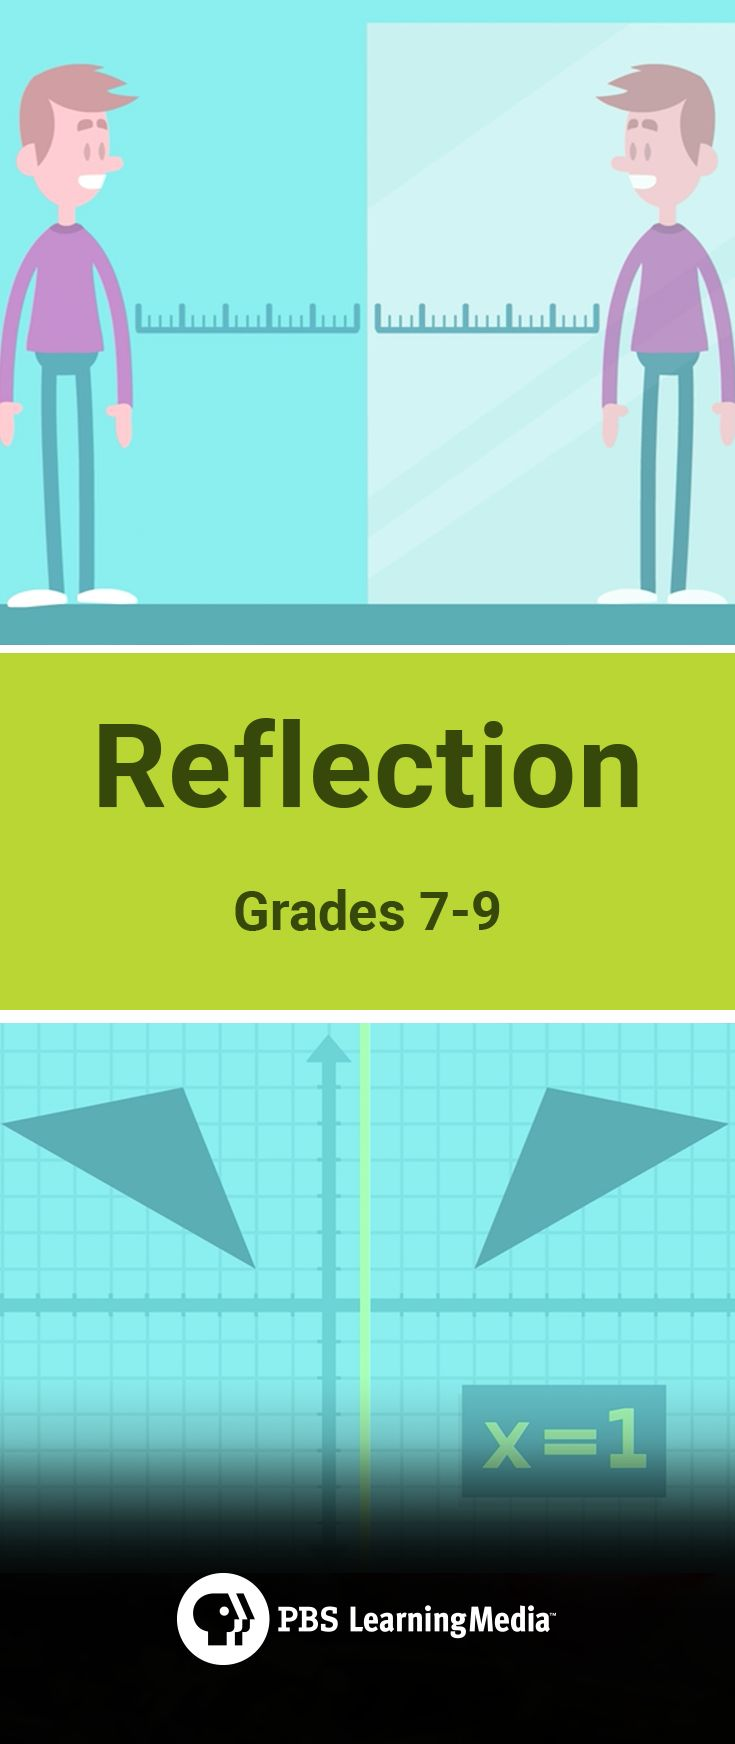 In this video, middle school geometry students learn about reflection, one type of movement for geometric shapes.